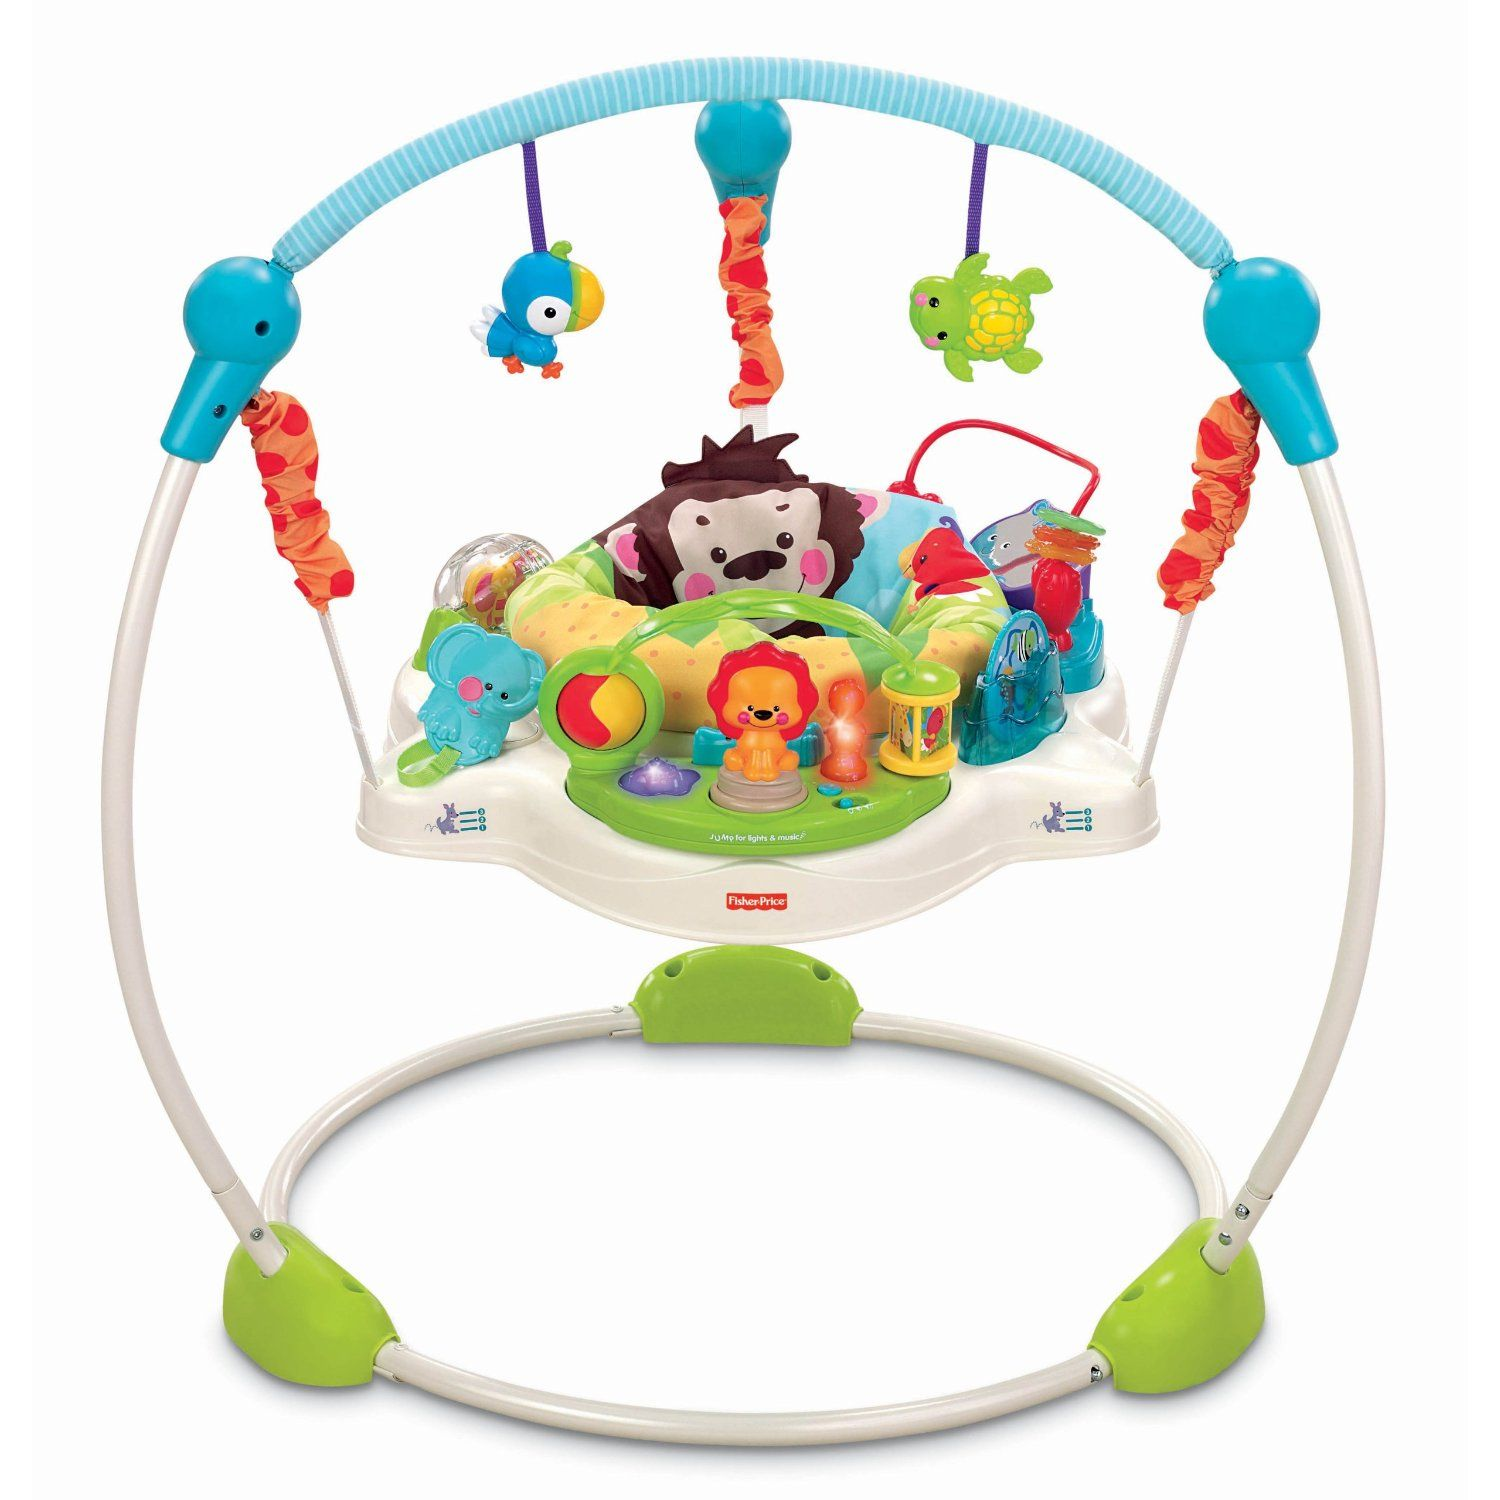 Fisher Price Precious Planet Jumperoo Jpg 1500 1500 Baby Activity Center Baby Activity Jumper Fisher Price